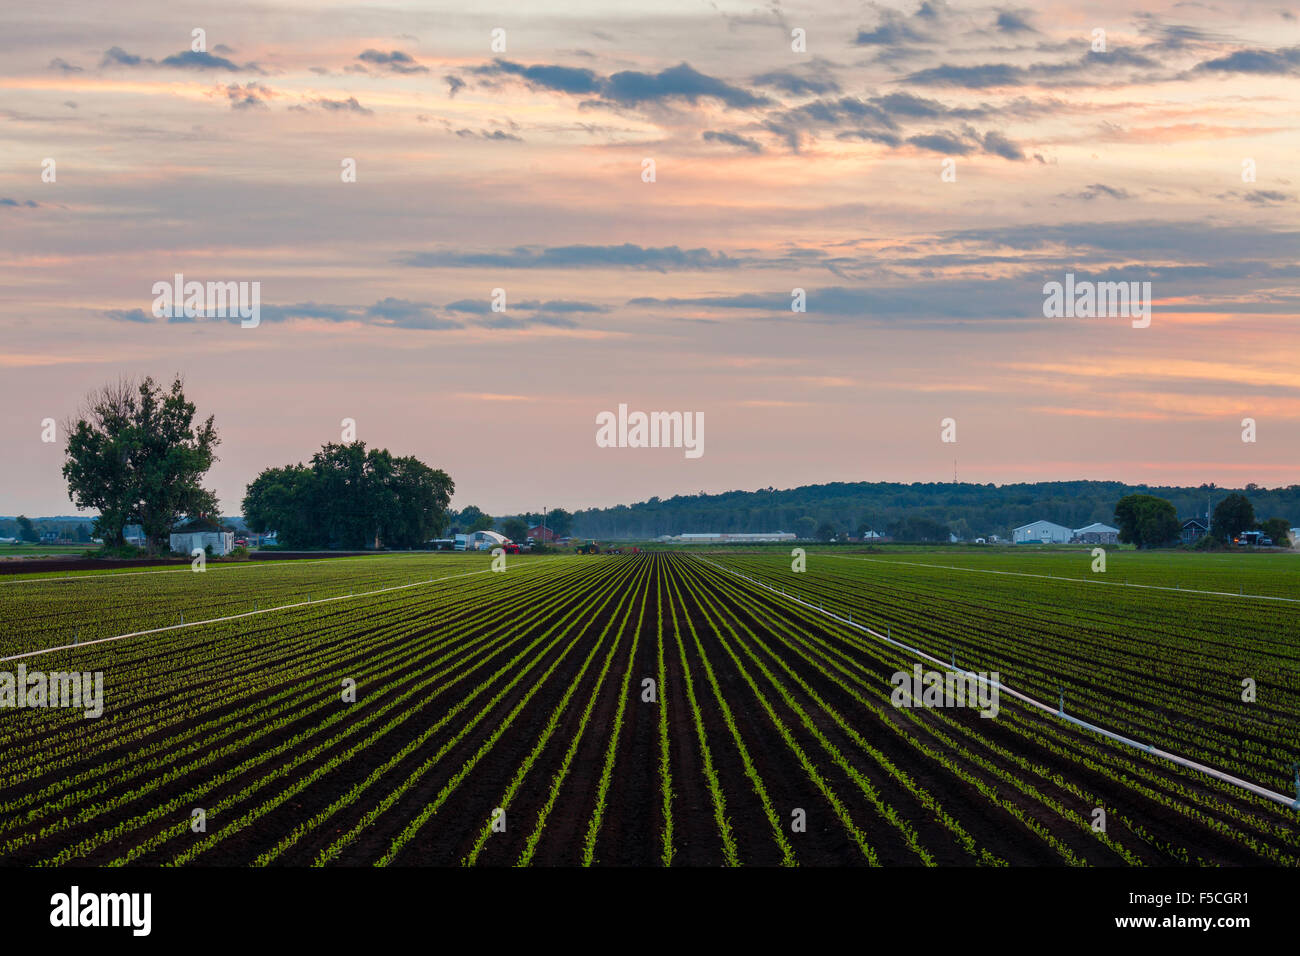 Agricultural crops in the Holland Marsh at sunset. King Township, Ontario, Canada. - Stock Image